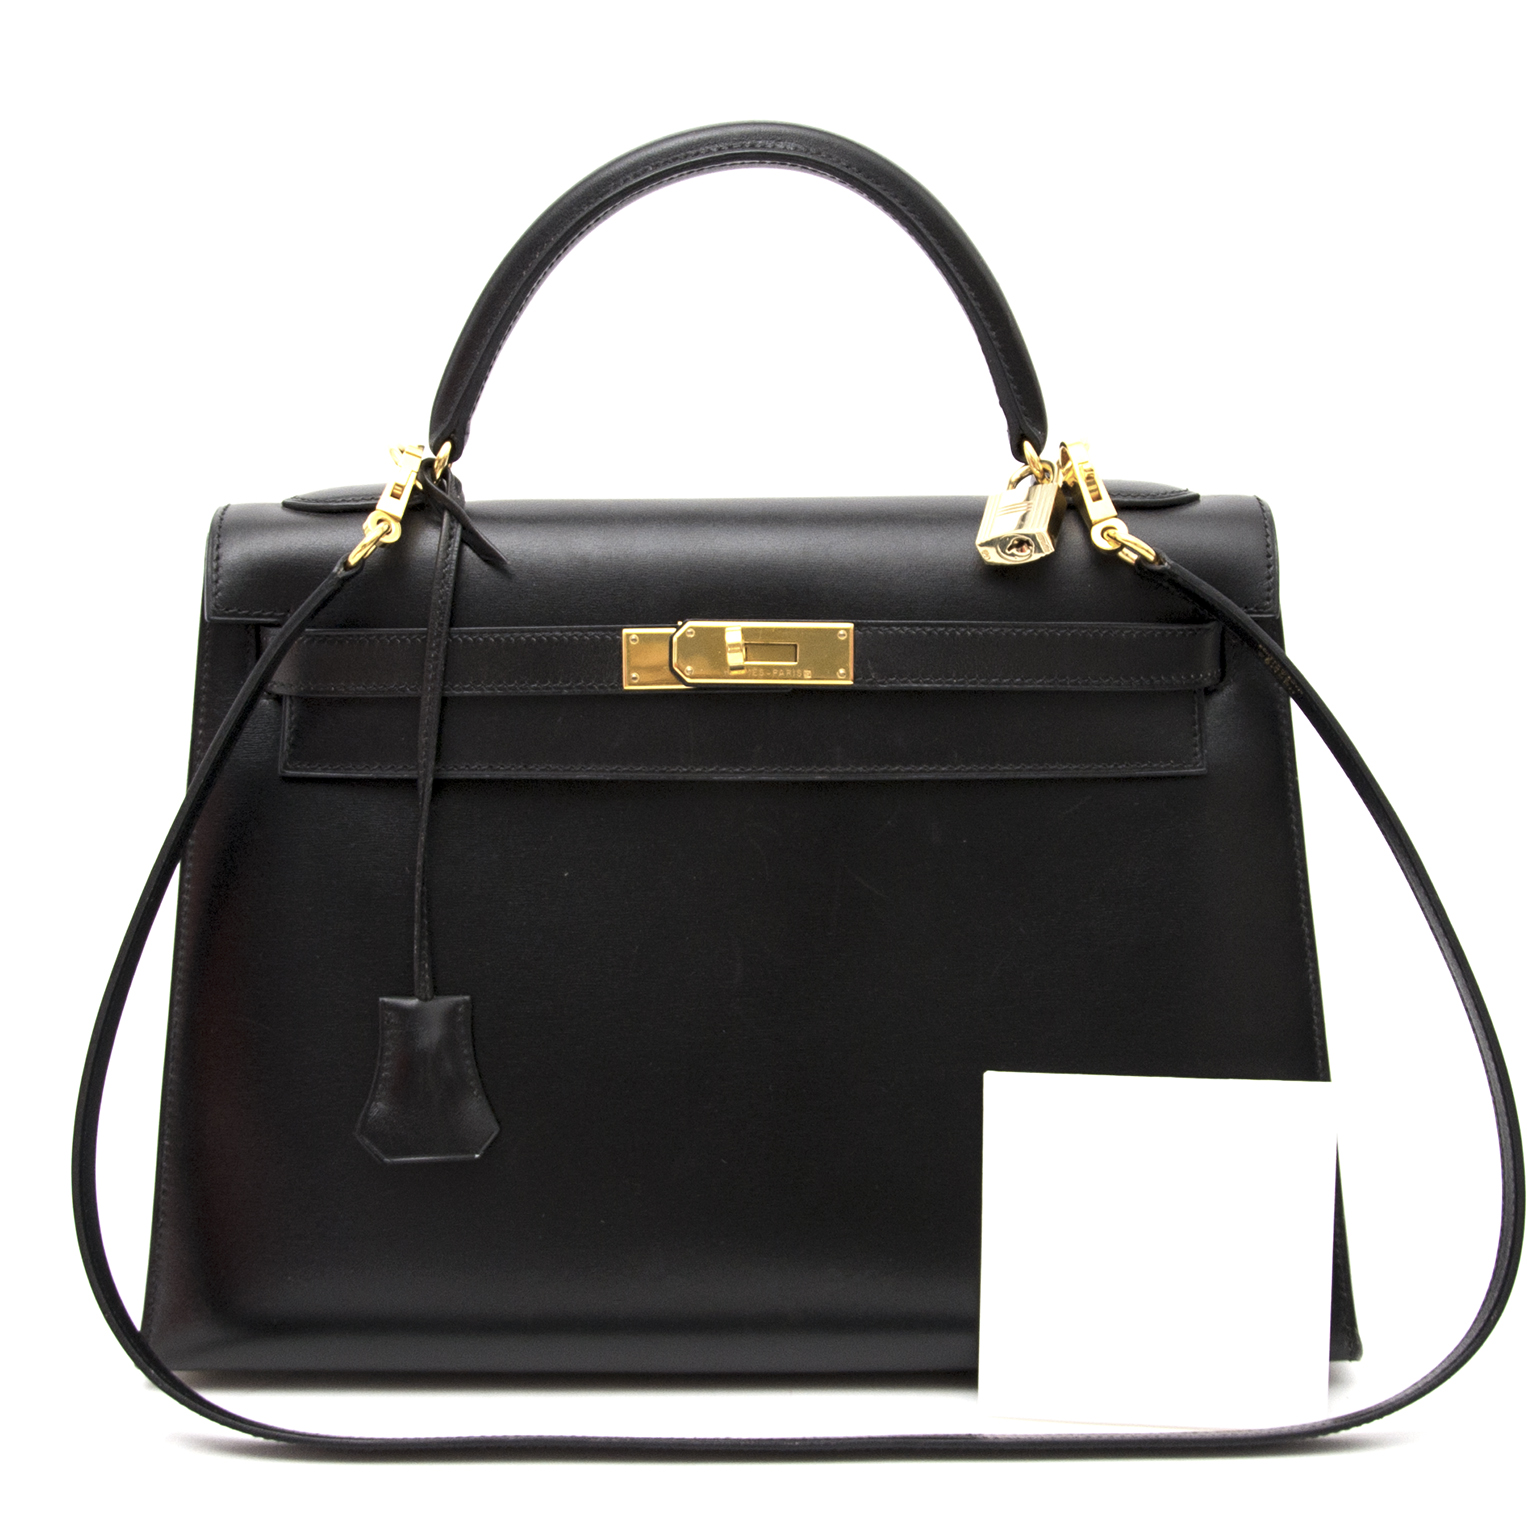 shop safe online at the best price Hermès Kelly 32 Black Boxcalf